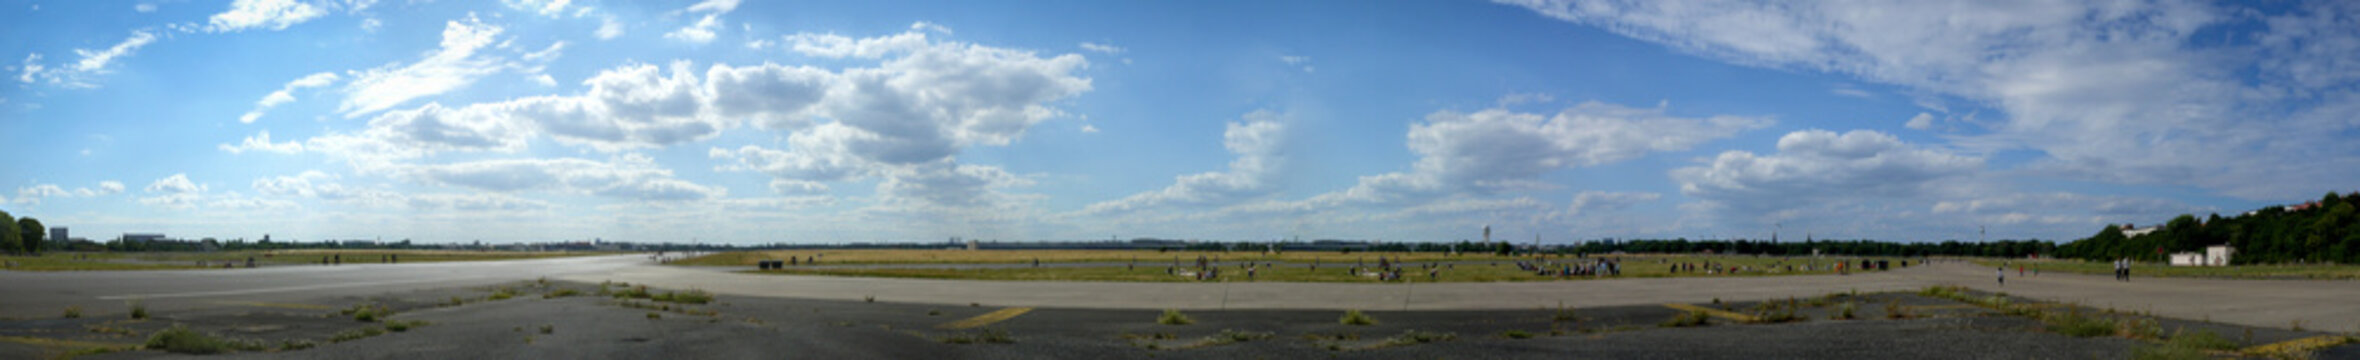 Berlin Tempelhof Airport Against Blue Cloudy Sky